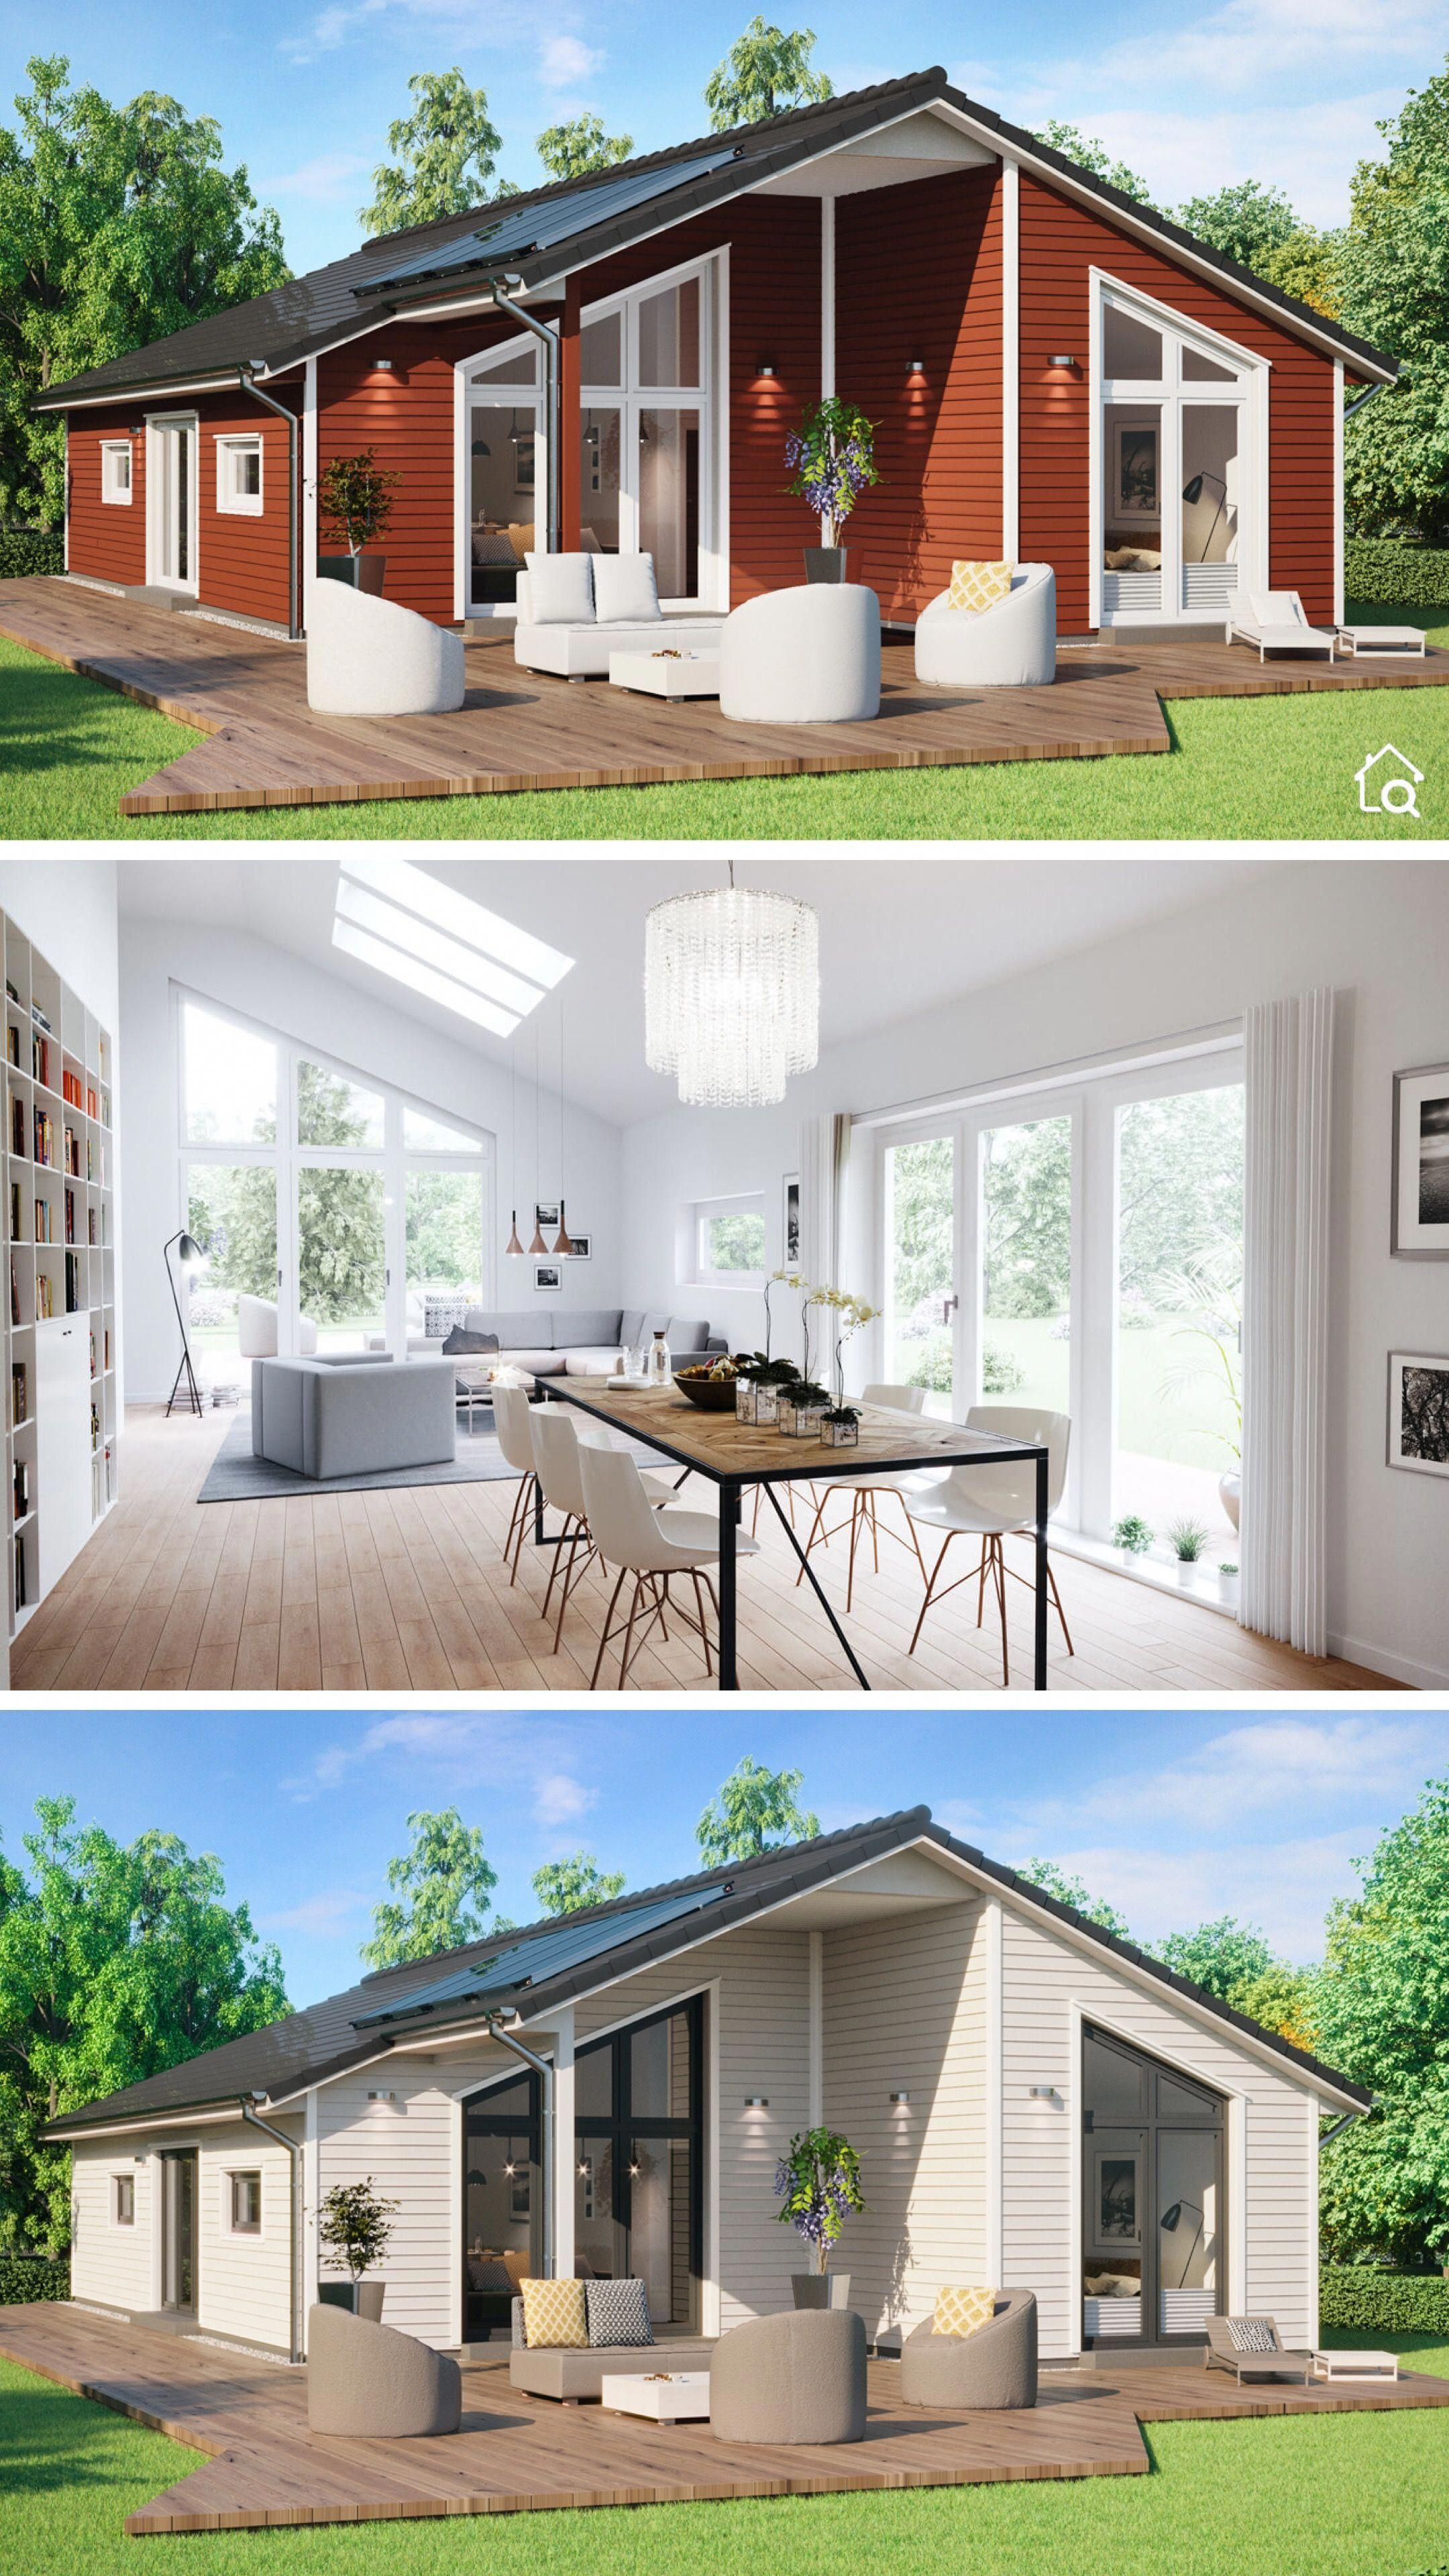 Bungalow House Architecture Design Modern Contemporary European Scandinavian Style Floor Plan Architecture House House Architecture Design Prefabricated Houses